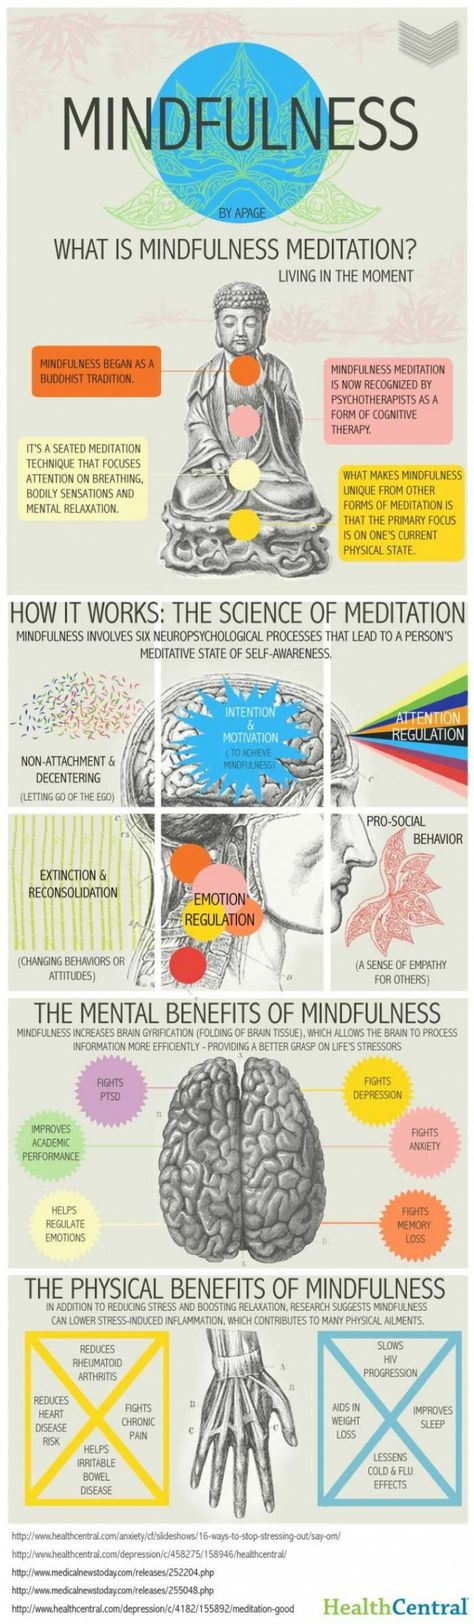 For the Mindful Art Therapists out there...a mindfulness benefits infographic